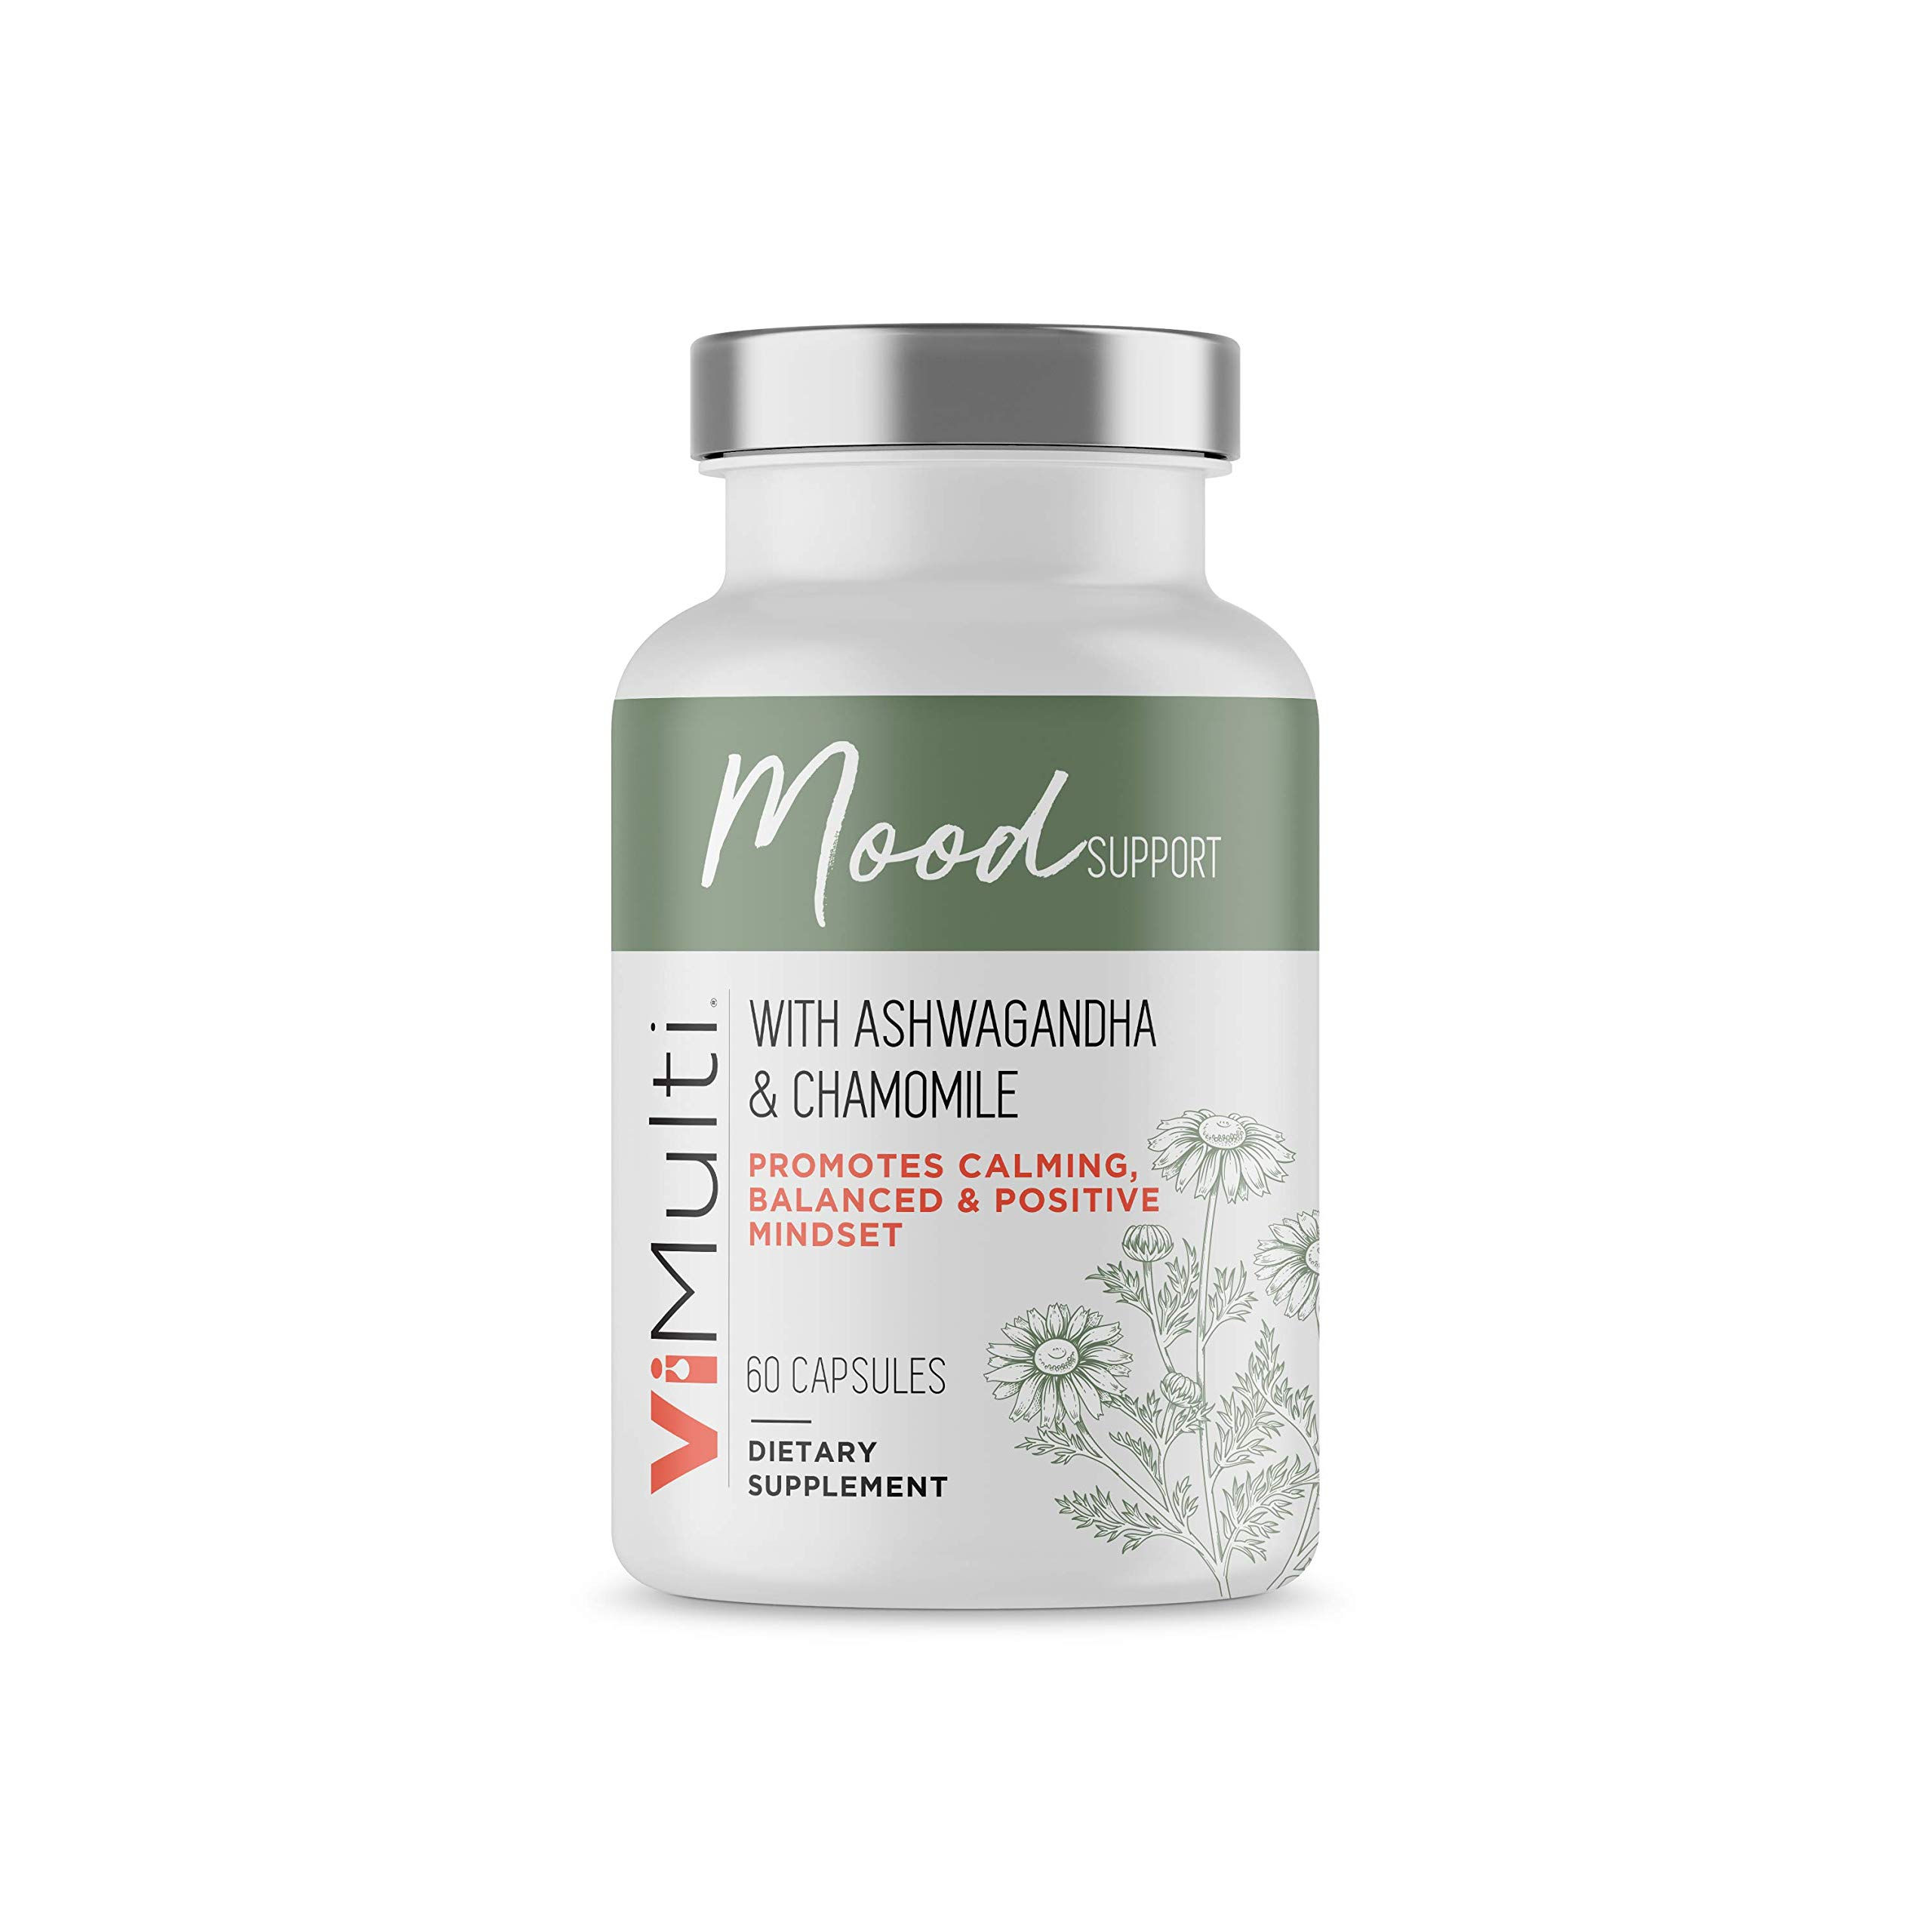 ViMulti Mood Support - Provides Anxiety Relief and Depression Support. Helps Manage Mood Swings with Mood Enhancing Vitamins.